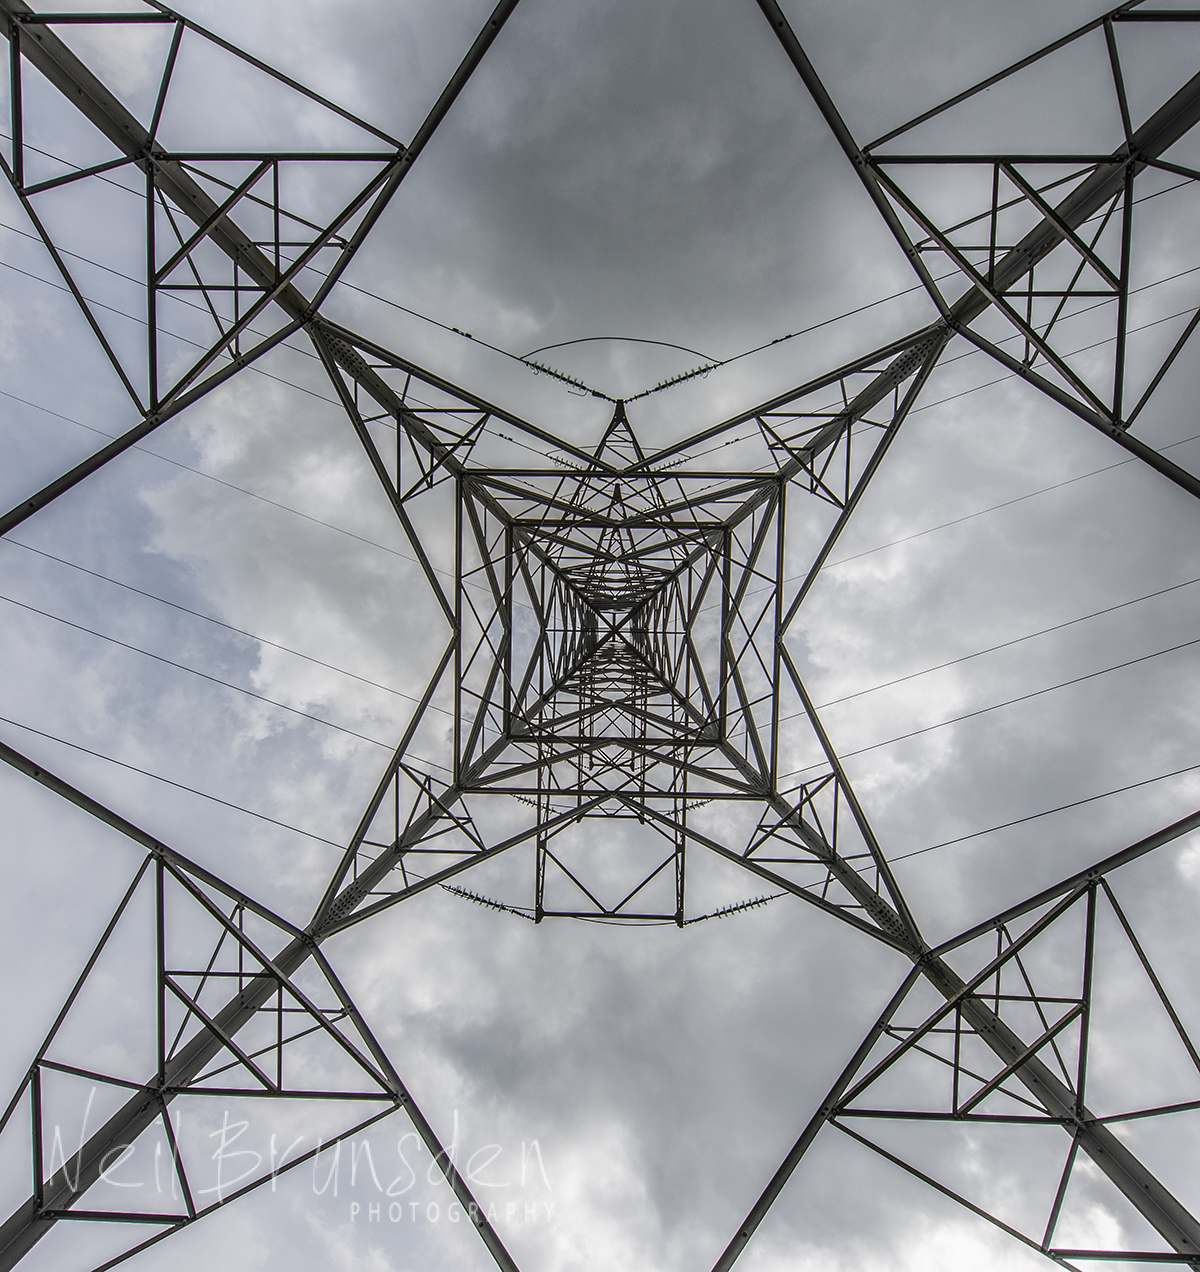 Pylon with 14mm lens